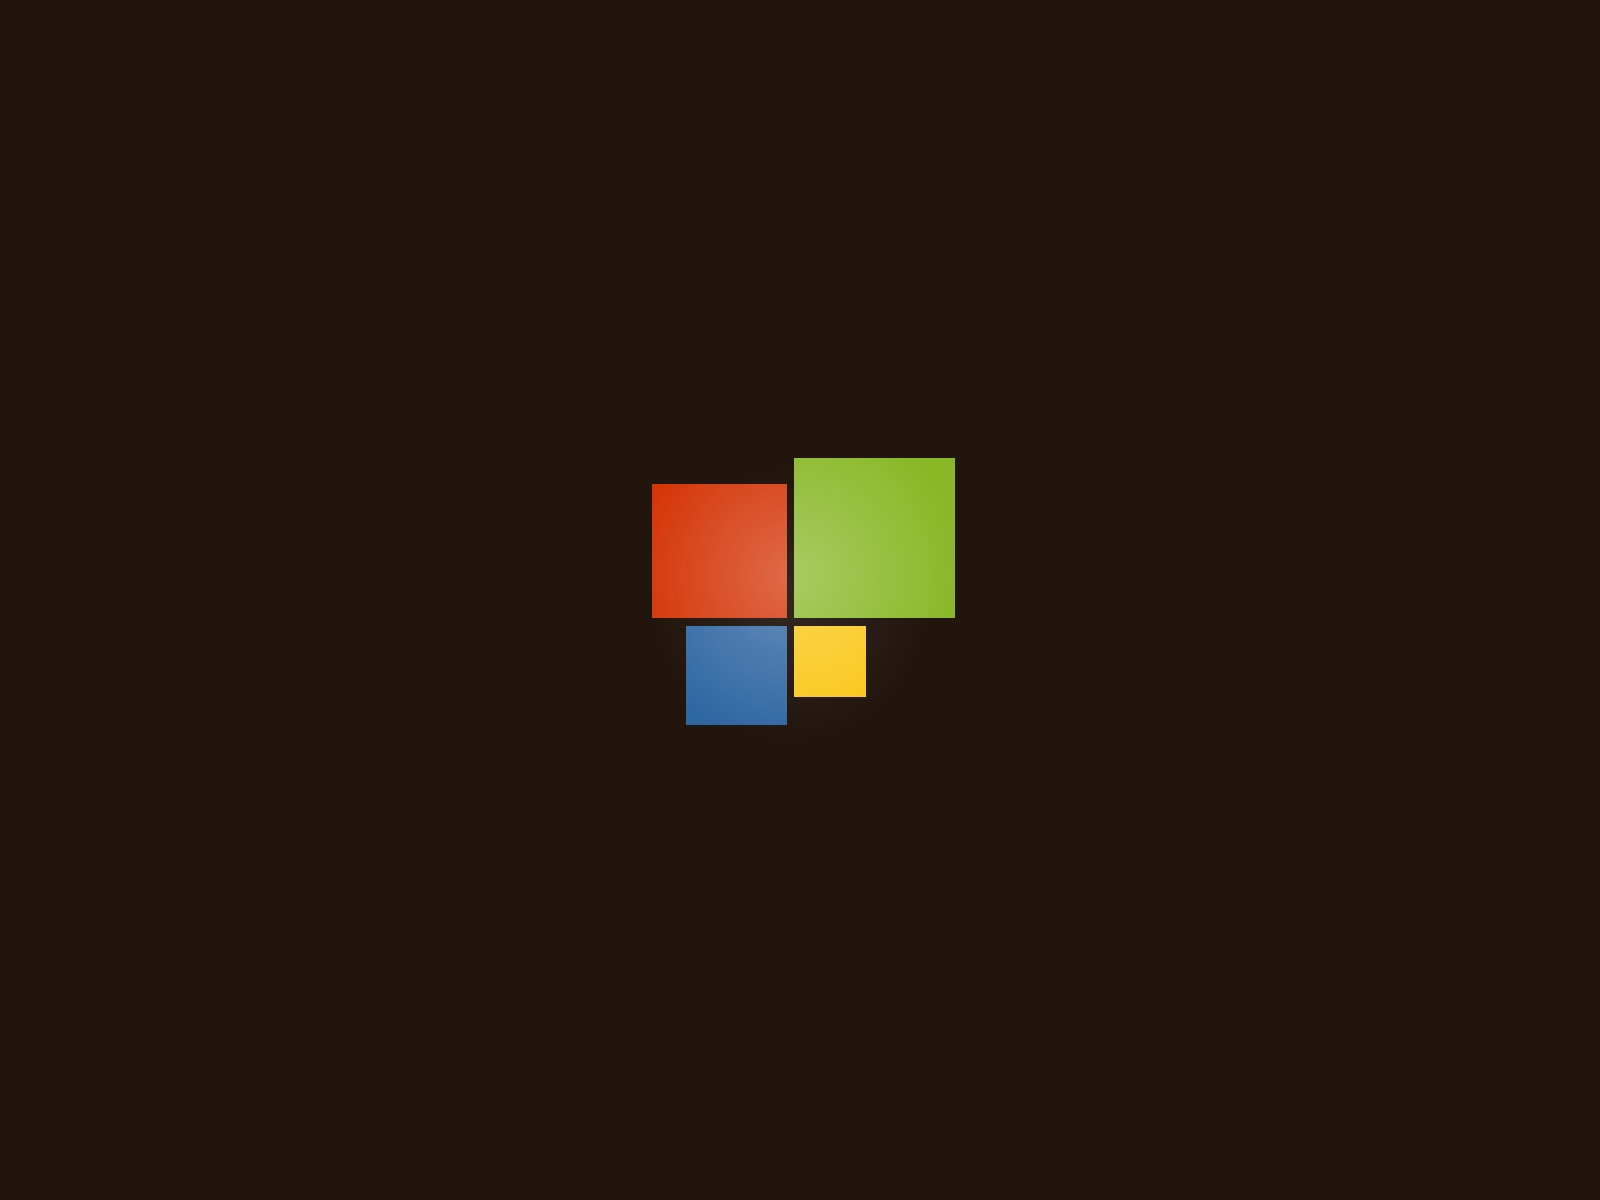 logos windows 8 minimalistic HD Wallpaper